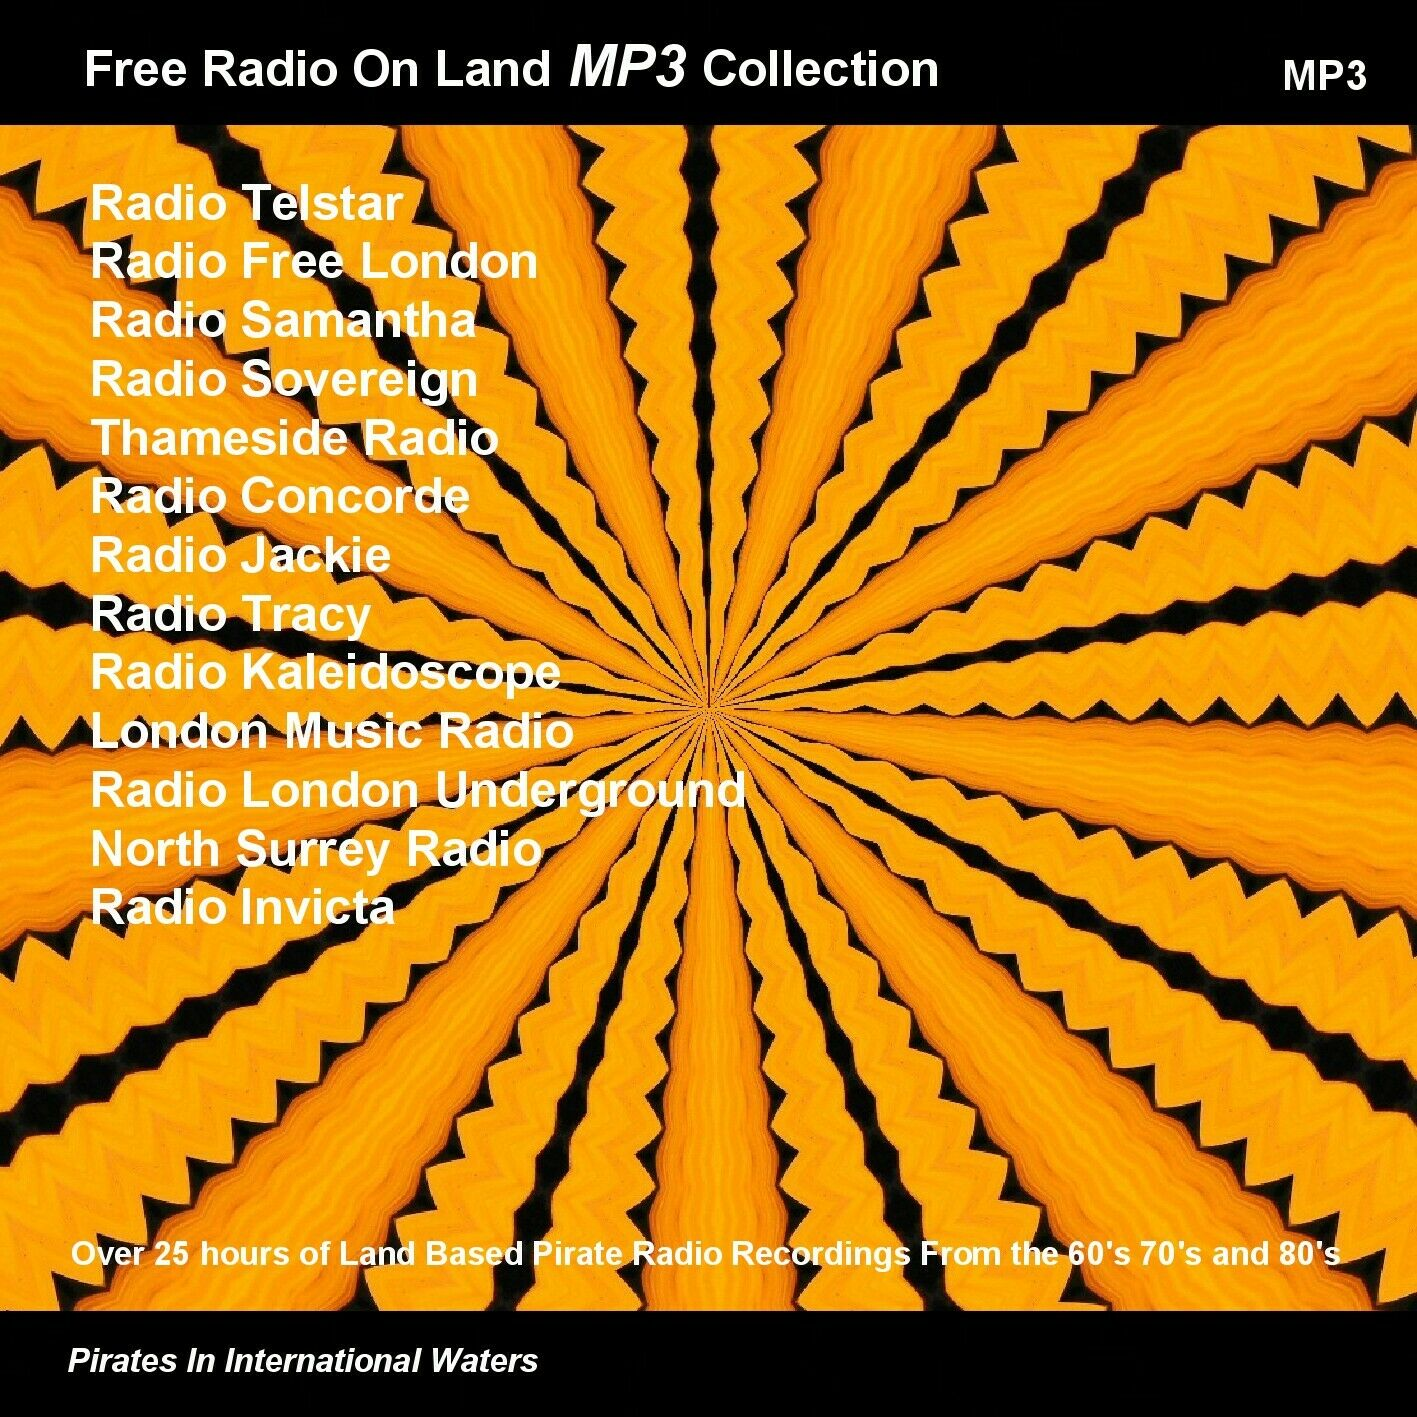 Details about Pirate Radio Land Based Volumes 1 & 2 (60s 70s, 80s, 90s)